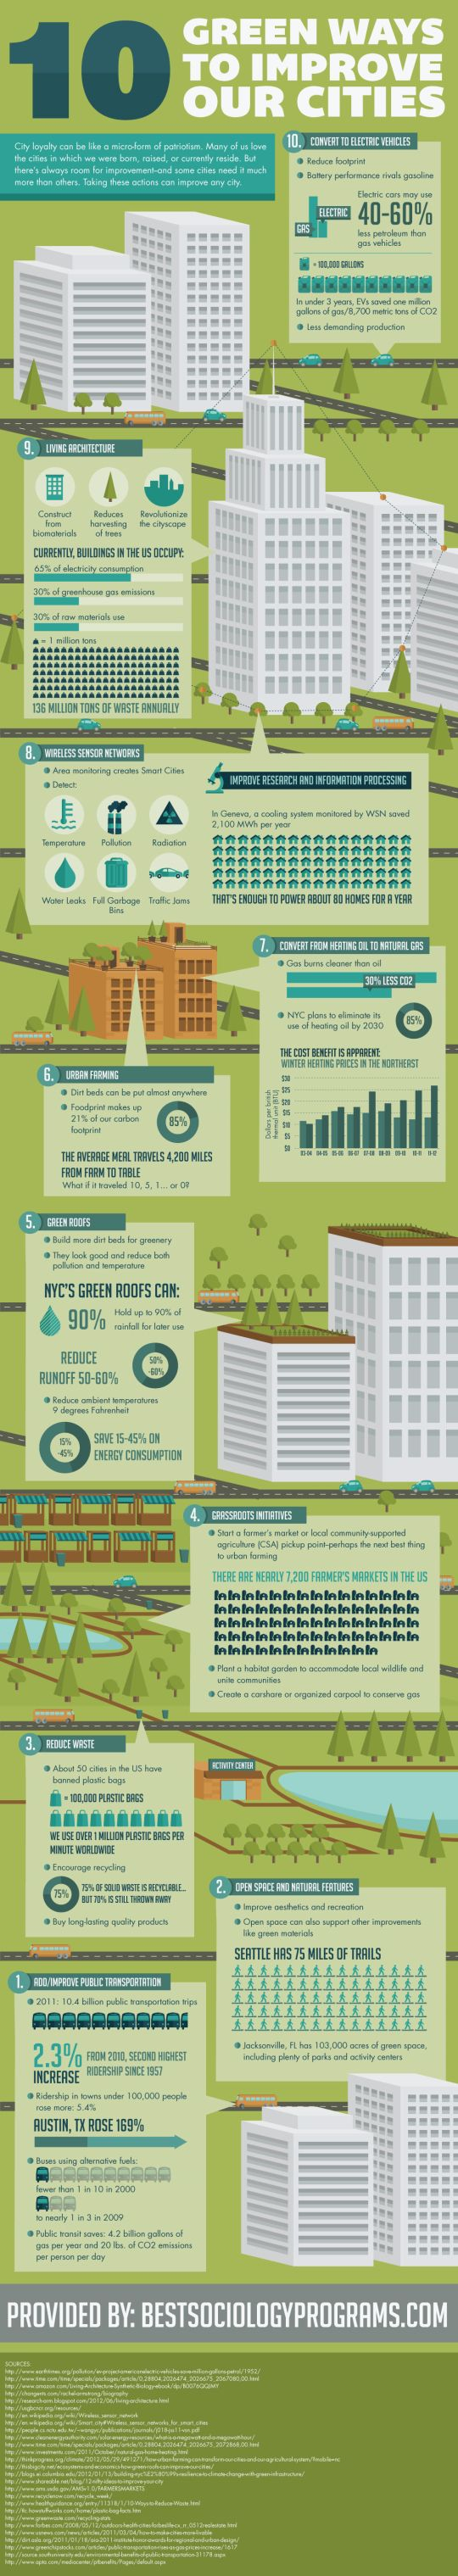 Cities Built to Thrive [infographic] Urban planning